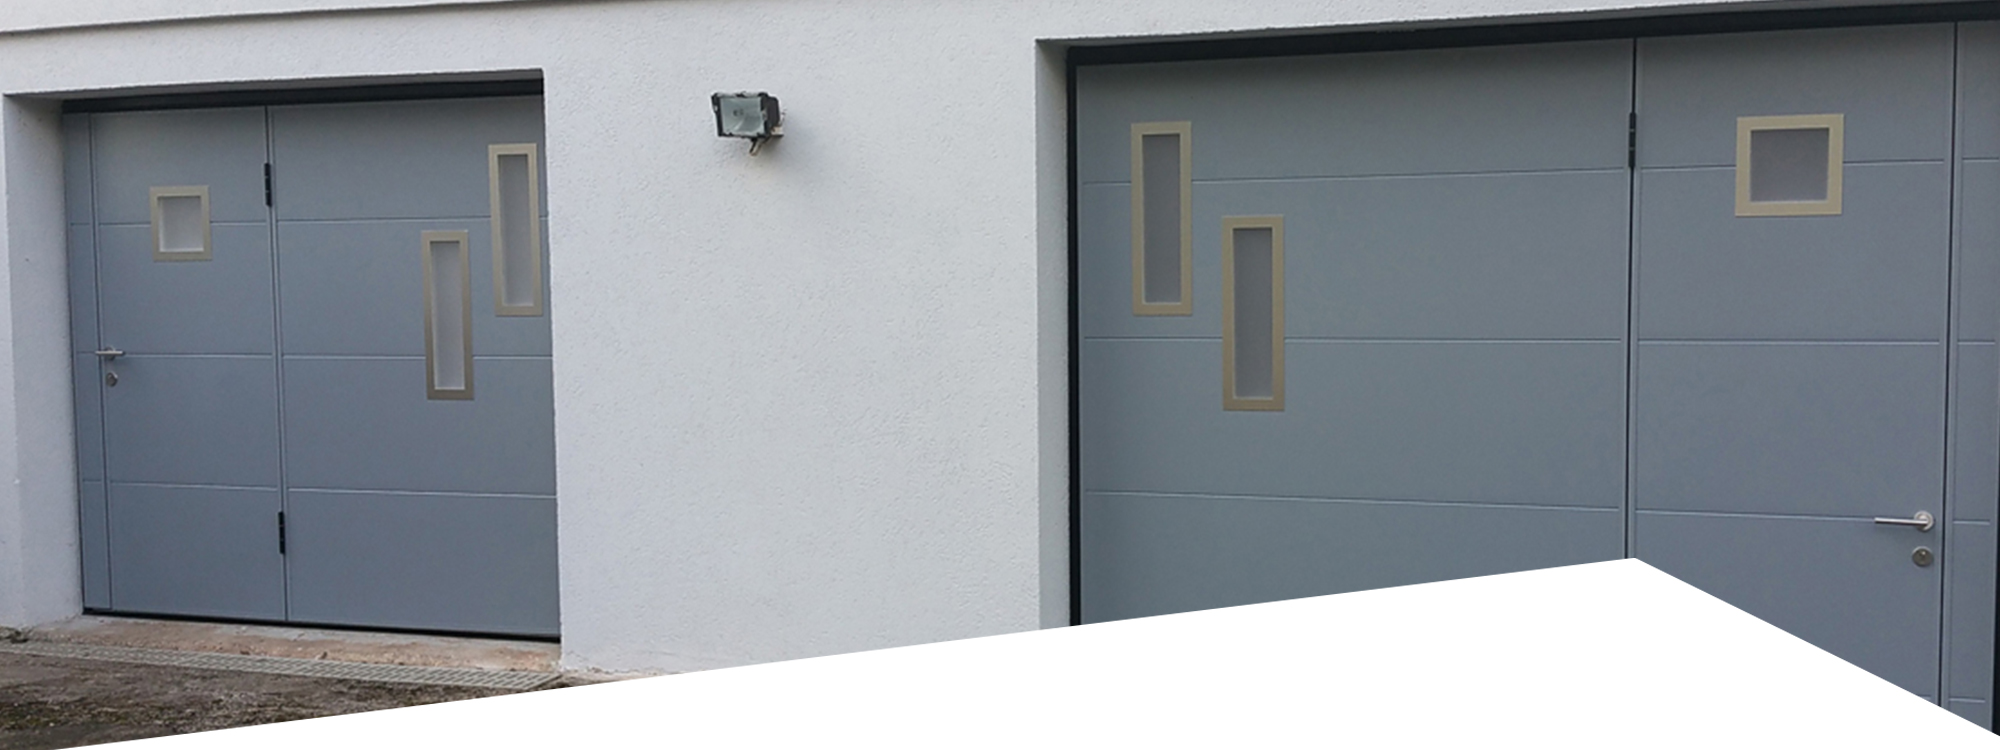 Revendeur wedoor en france for Porte de garage fabrication francaise